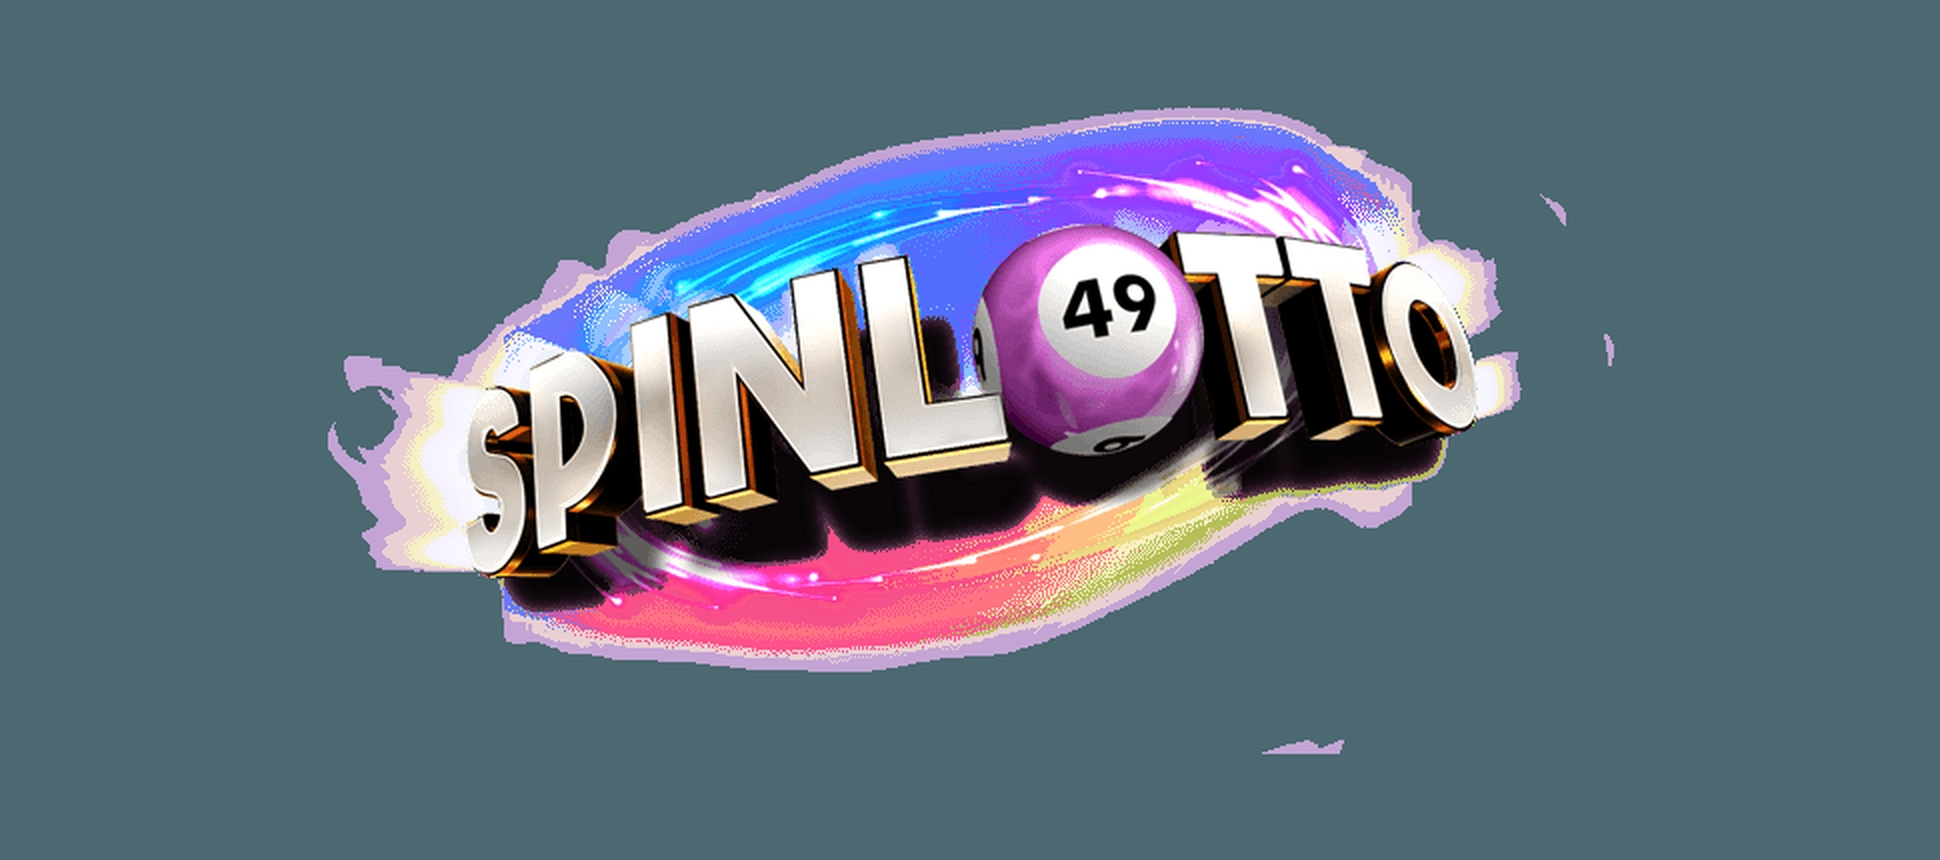 The Spinlotto Online Slot Demo Game by Gamevy